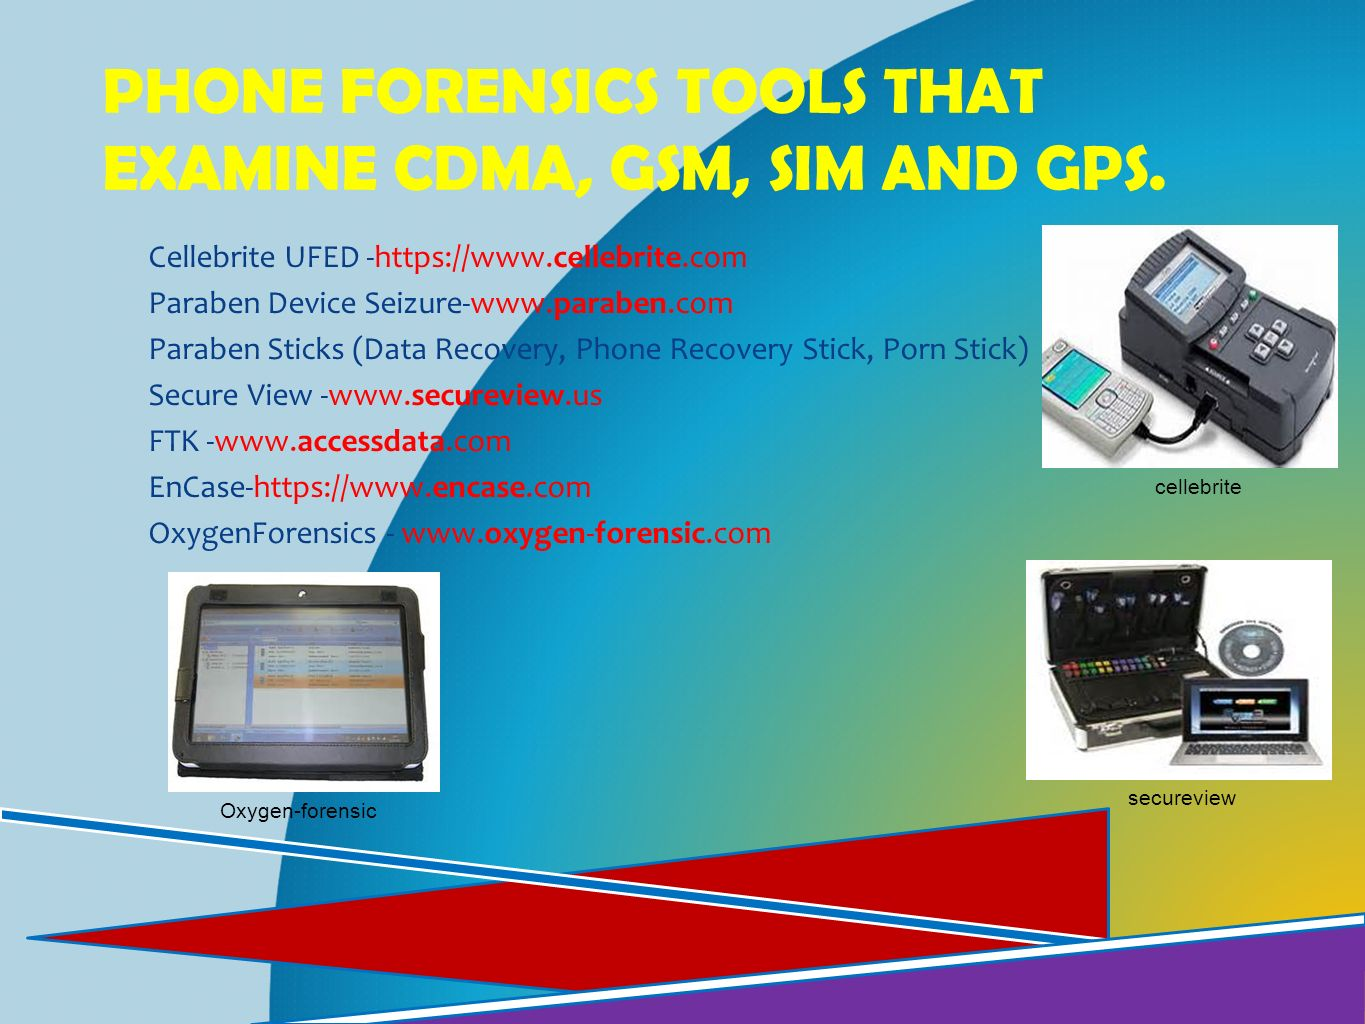 Phone forensics tools that examine CDMA, GSM, SIM and GPS.